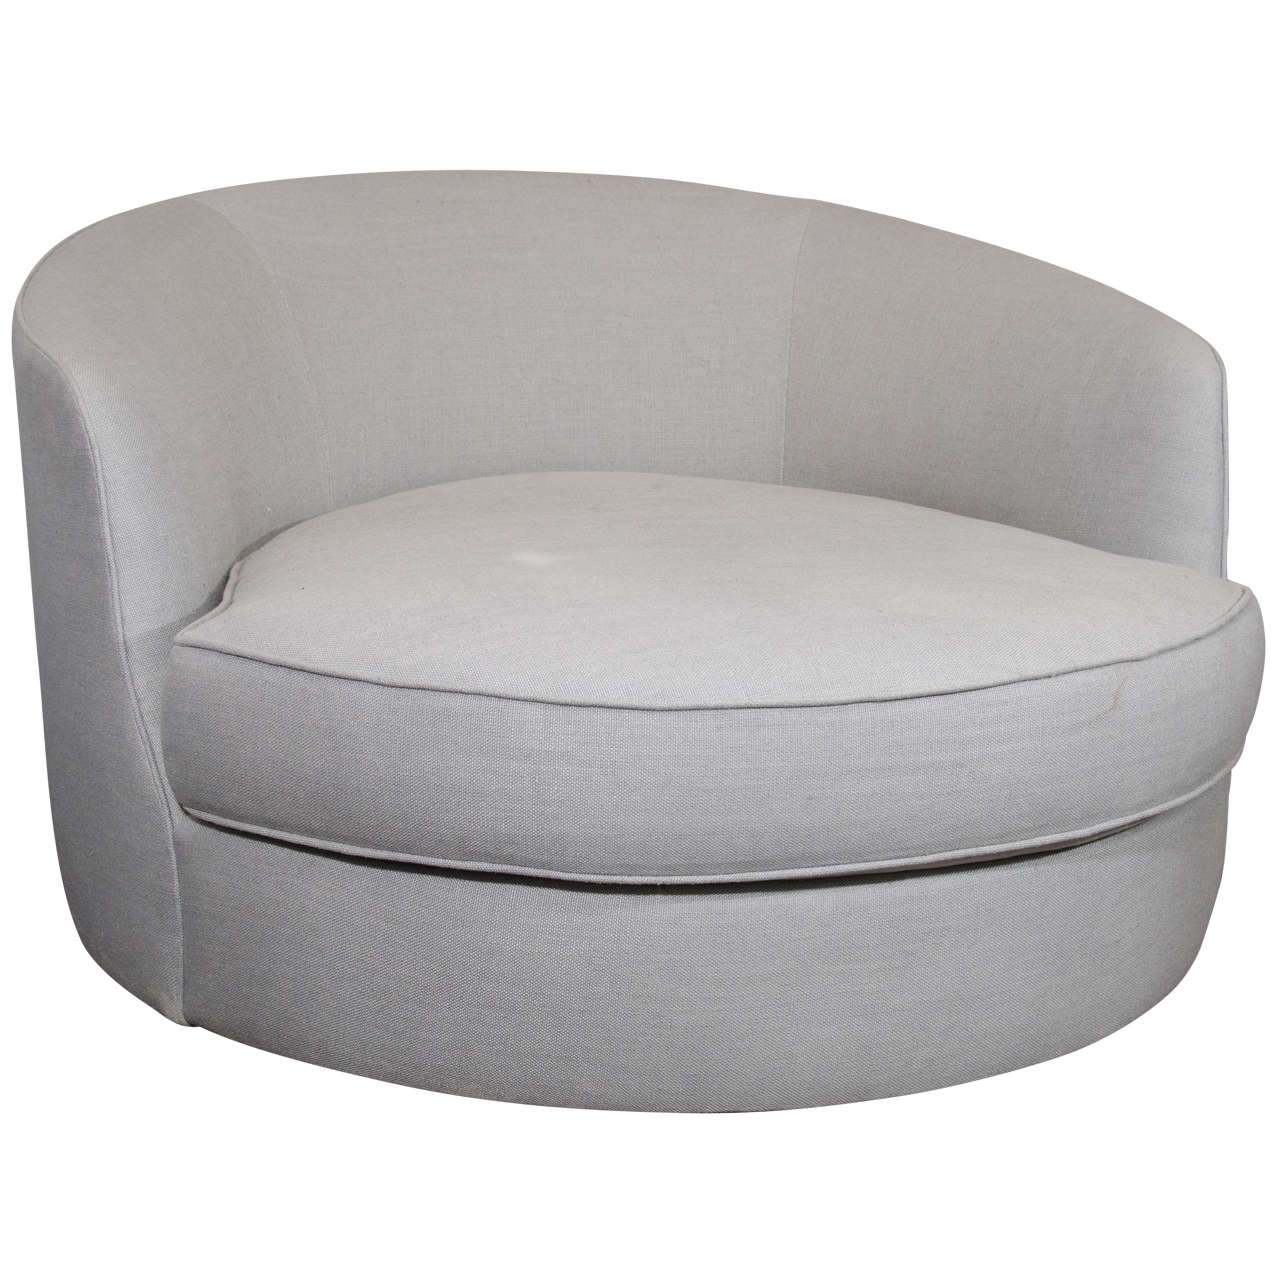 Tub Chairs 1960s Milo Baughman Tub Chair